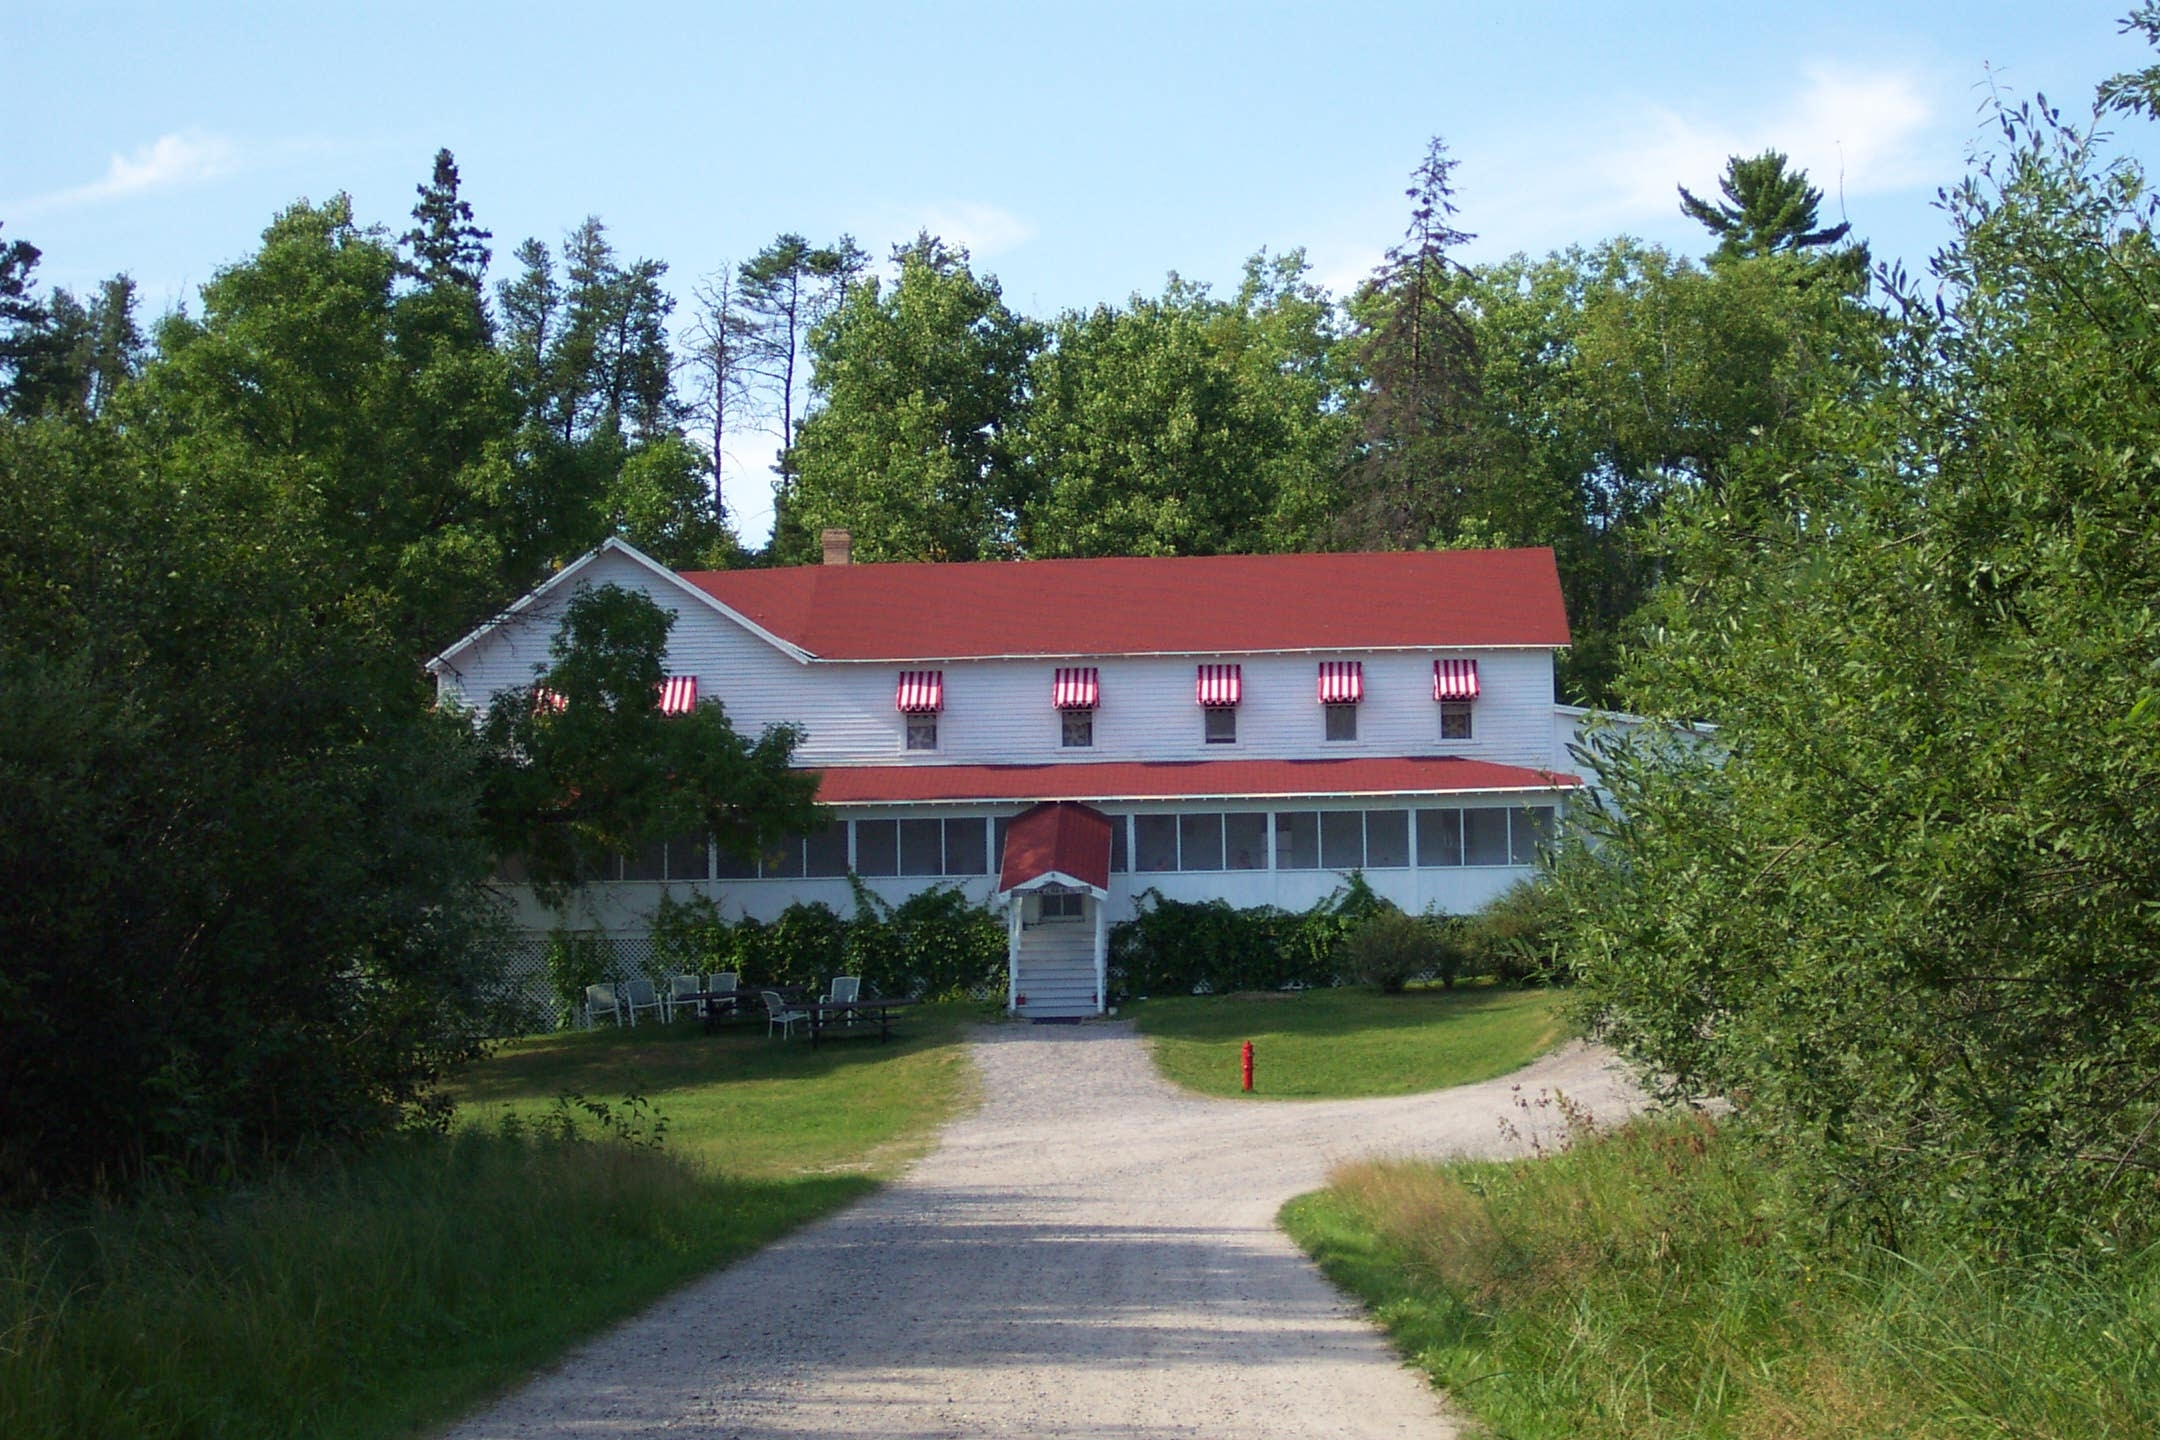 A white hotel with a red roof with trees around.